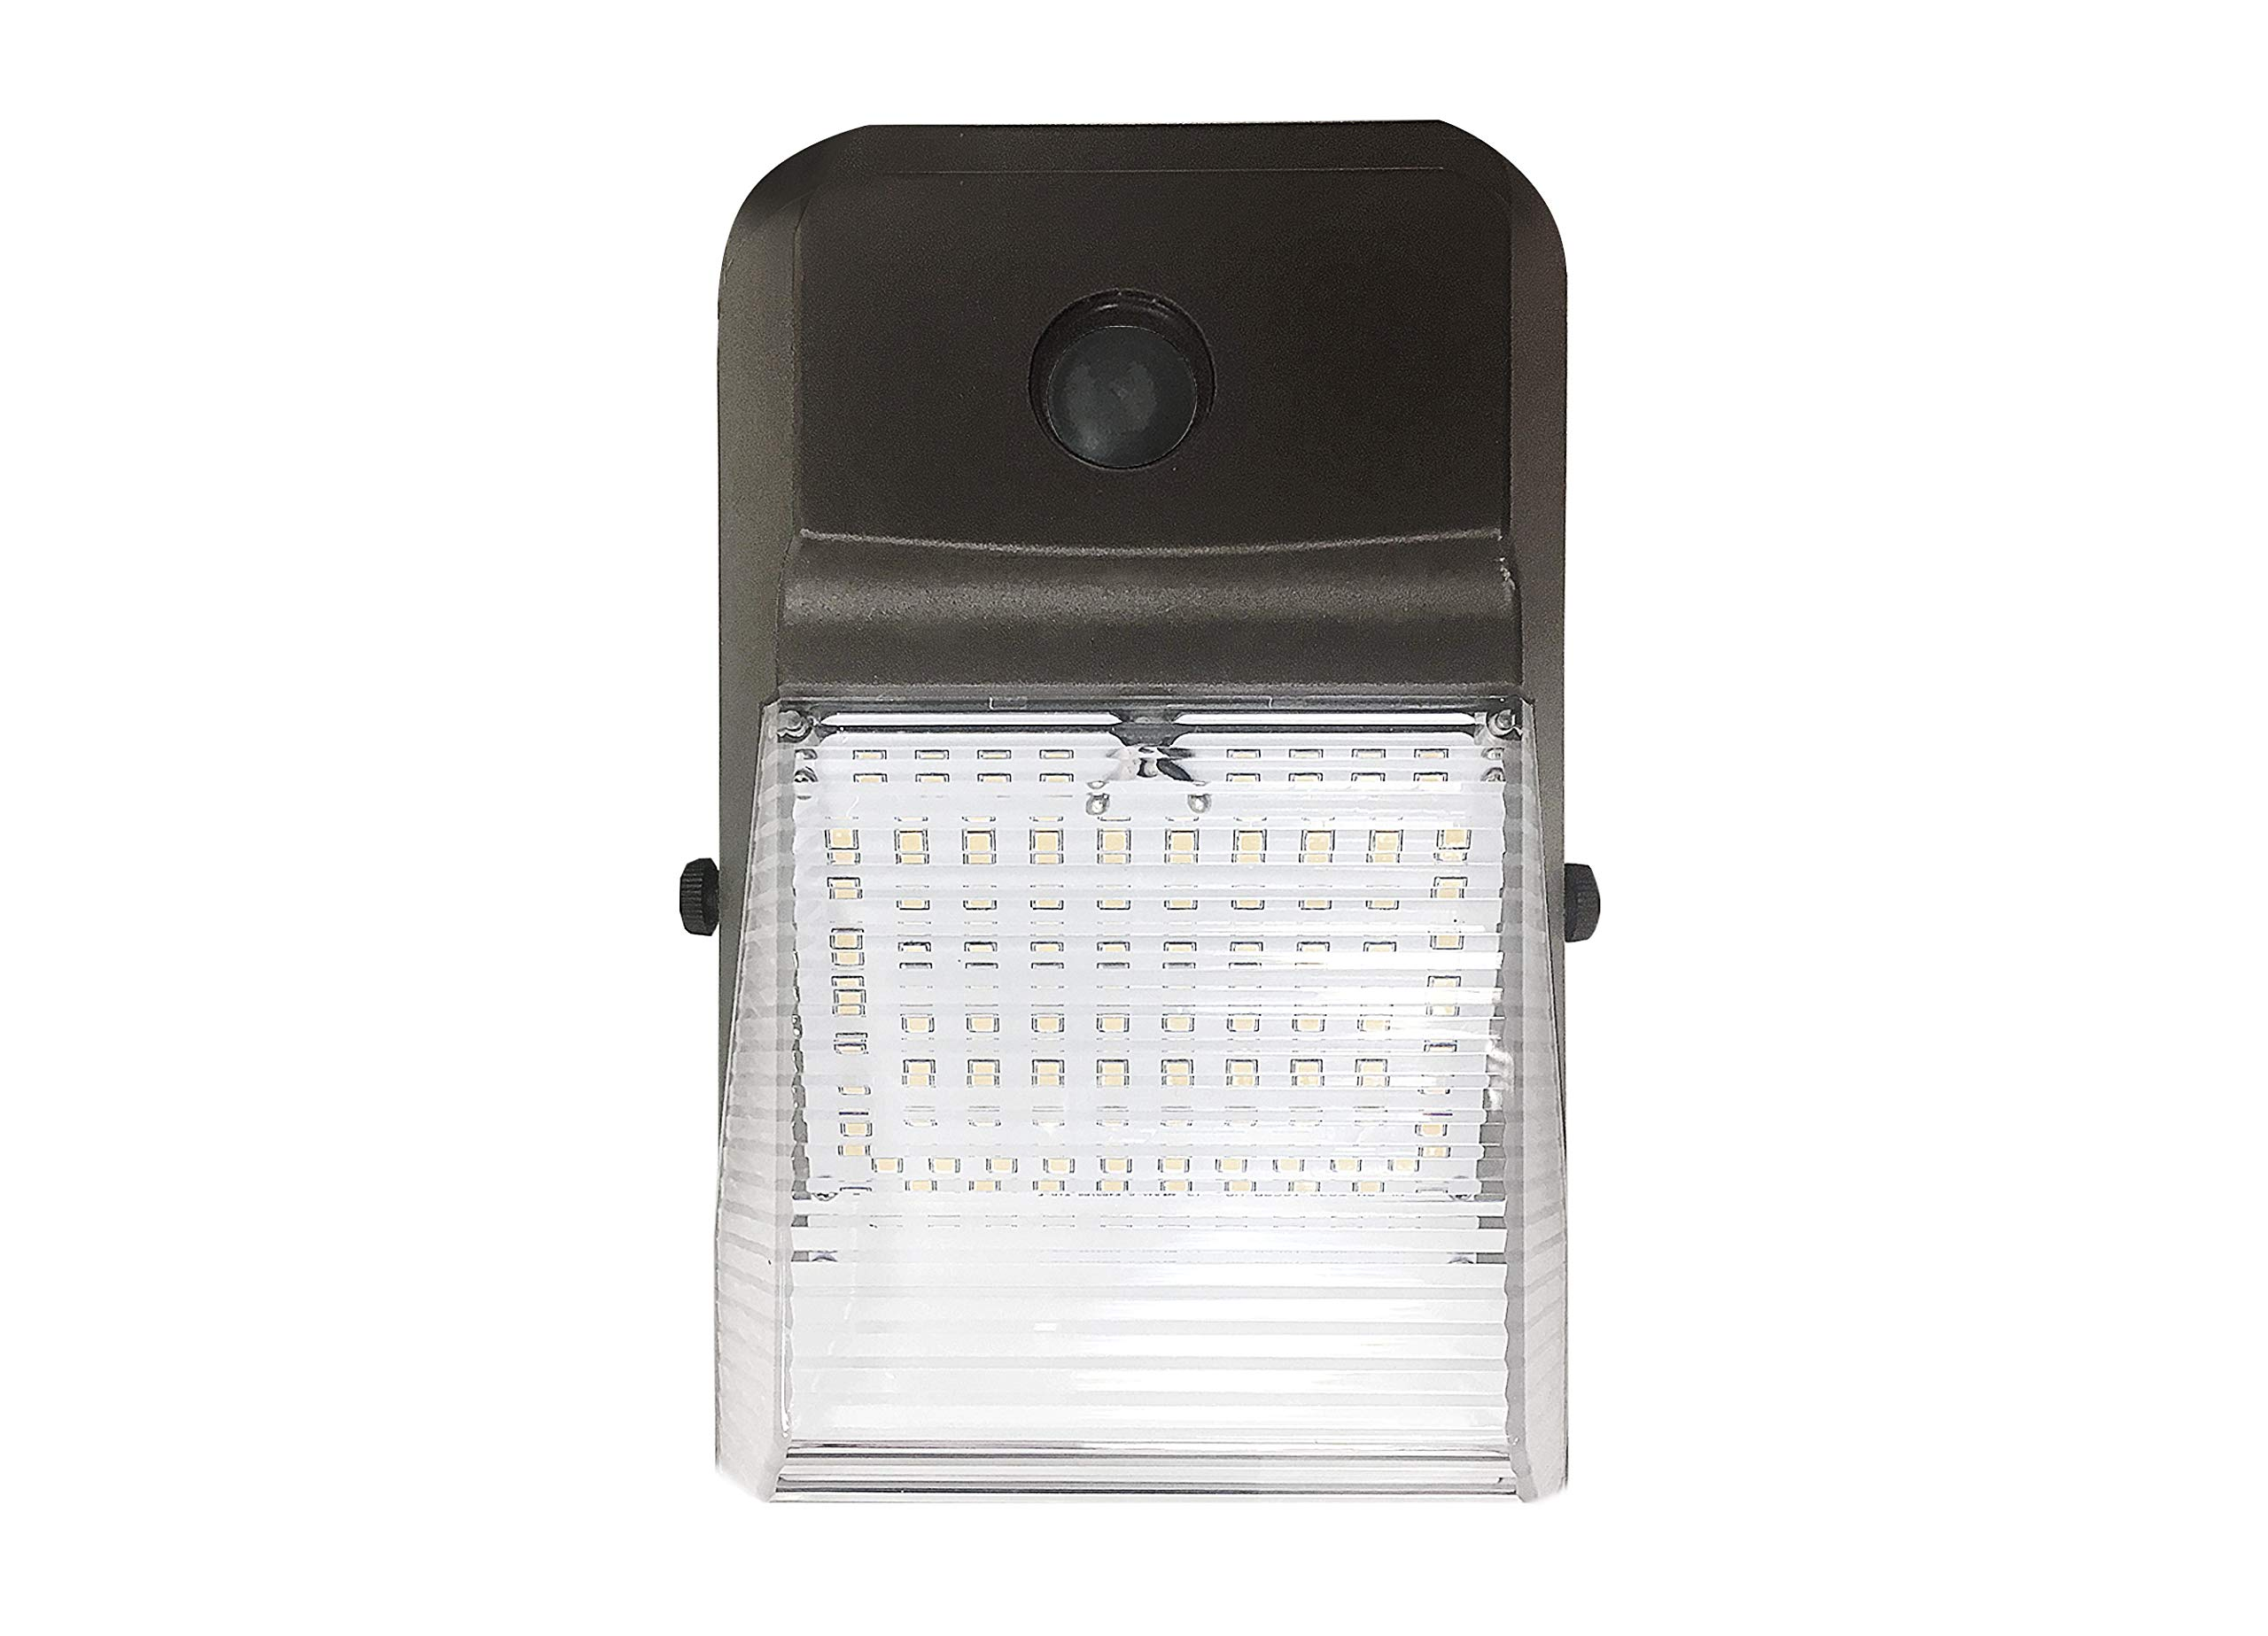 ASD 15W LED Wall Pack Light Outdoor, Commercial Grade, 4000K (Bright White), Bronze, Waterproof IP 65, Security Area Lighting, UL Certified, DLC Listed